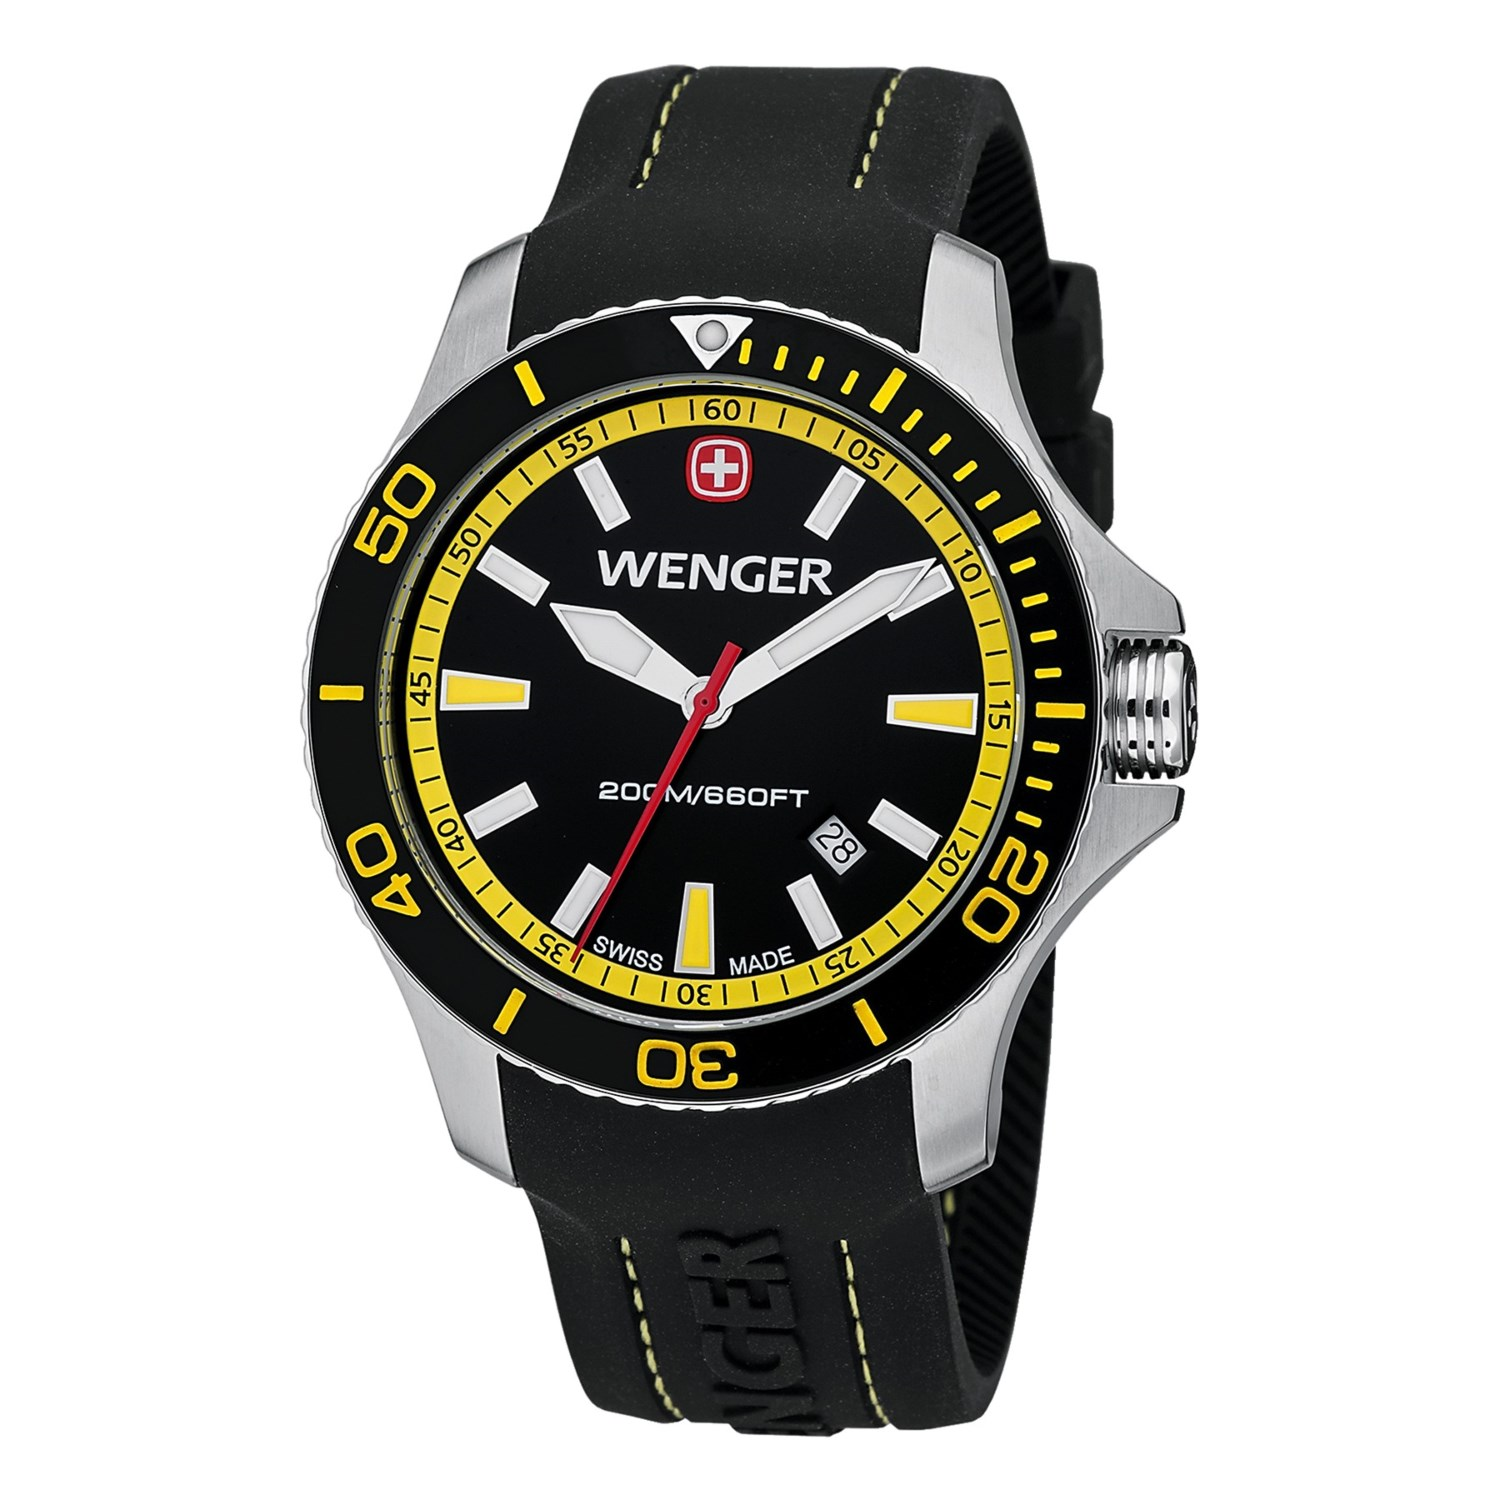 wenger sea force watch for men save 52% click to expand